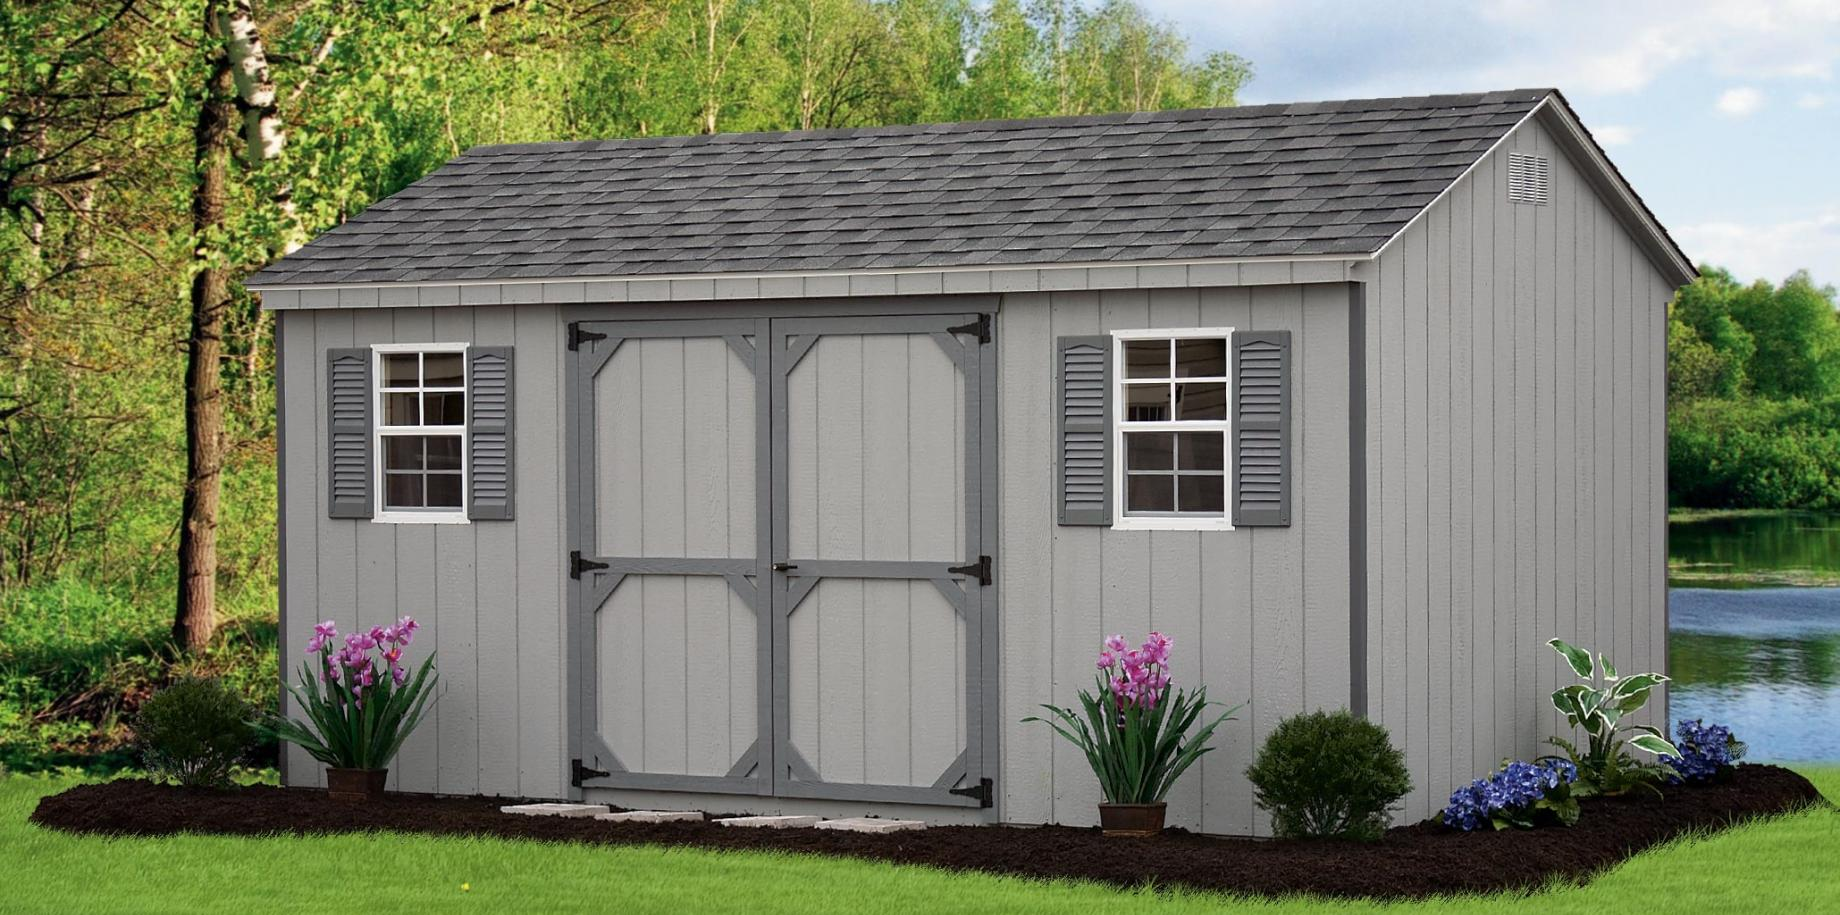 Wooden A-Frame style shed with wood siding.